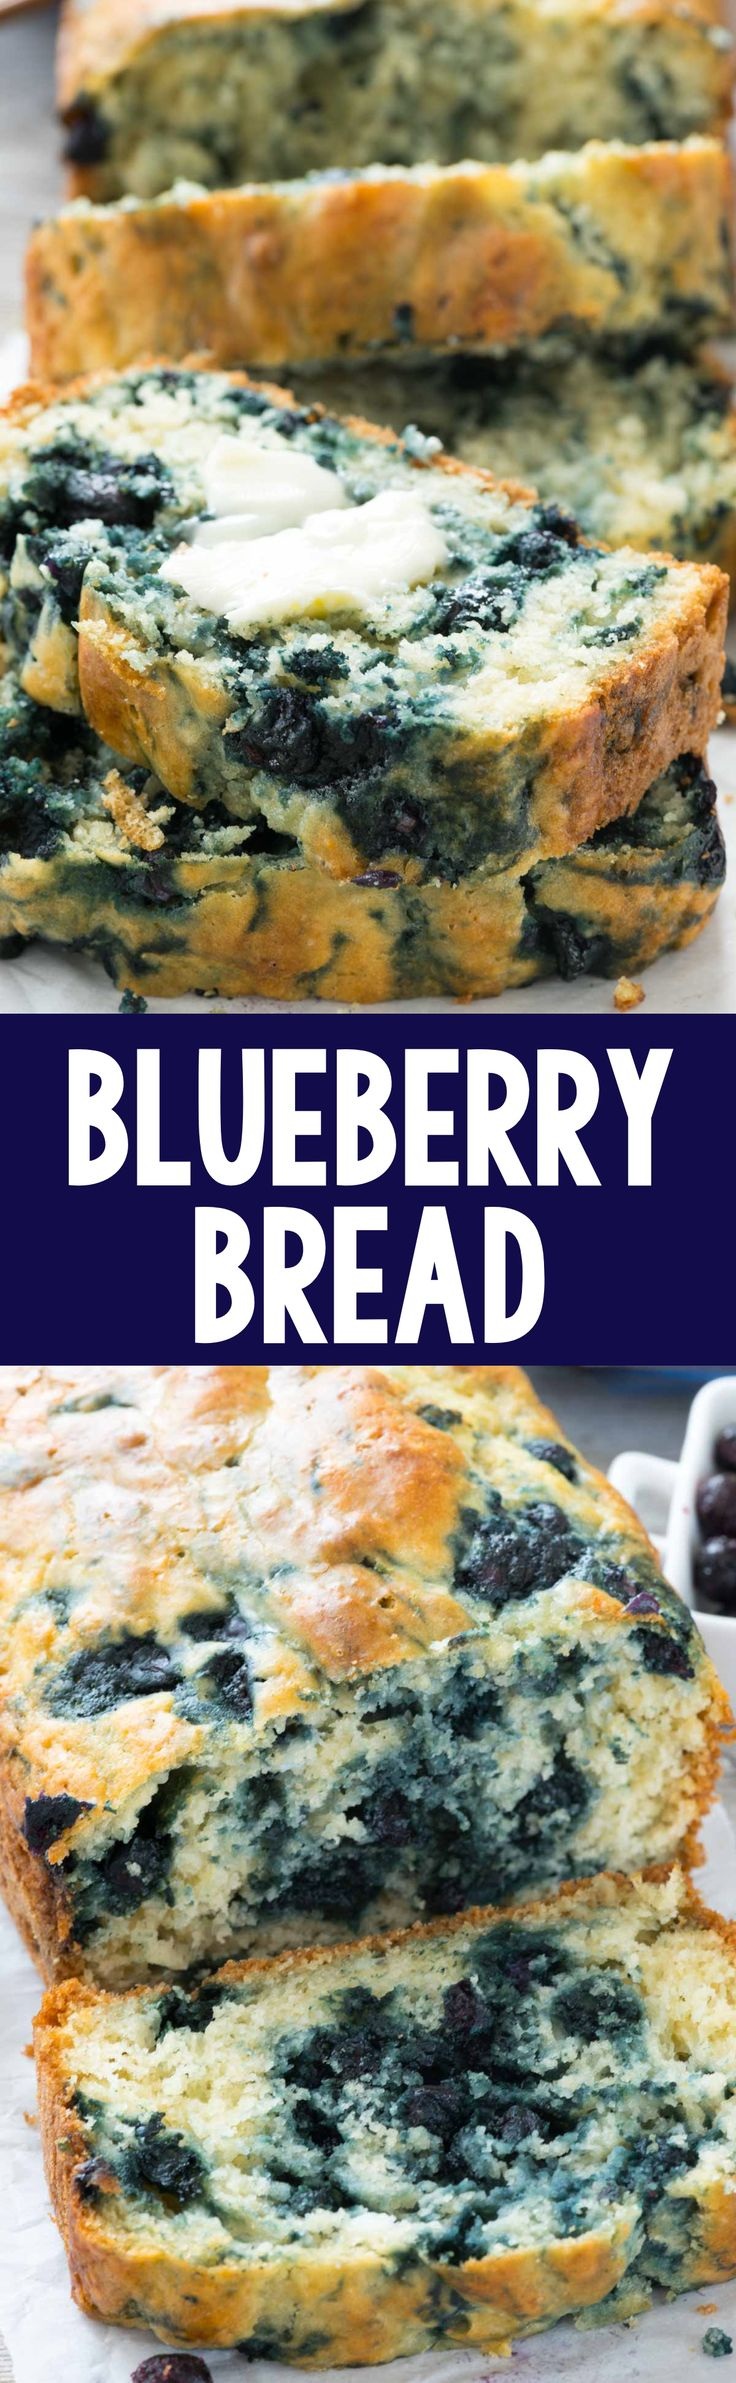 Blueberry Quick Bread - this easy bread recipe is full of blueberries and has less added sugar! It's the perfect breakfast; like a blueberry muffin but bread! #sweetswaps #splendasweeties #ad